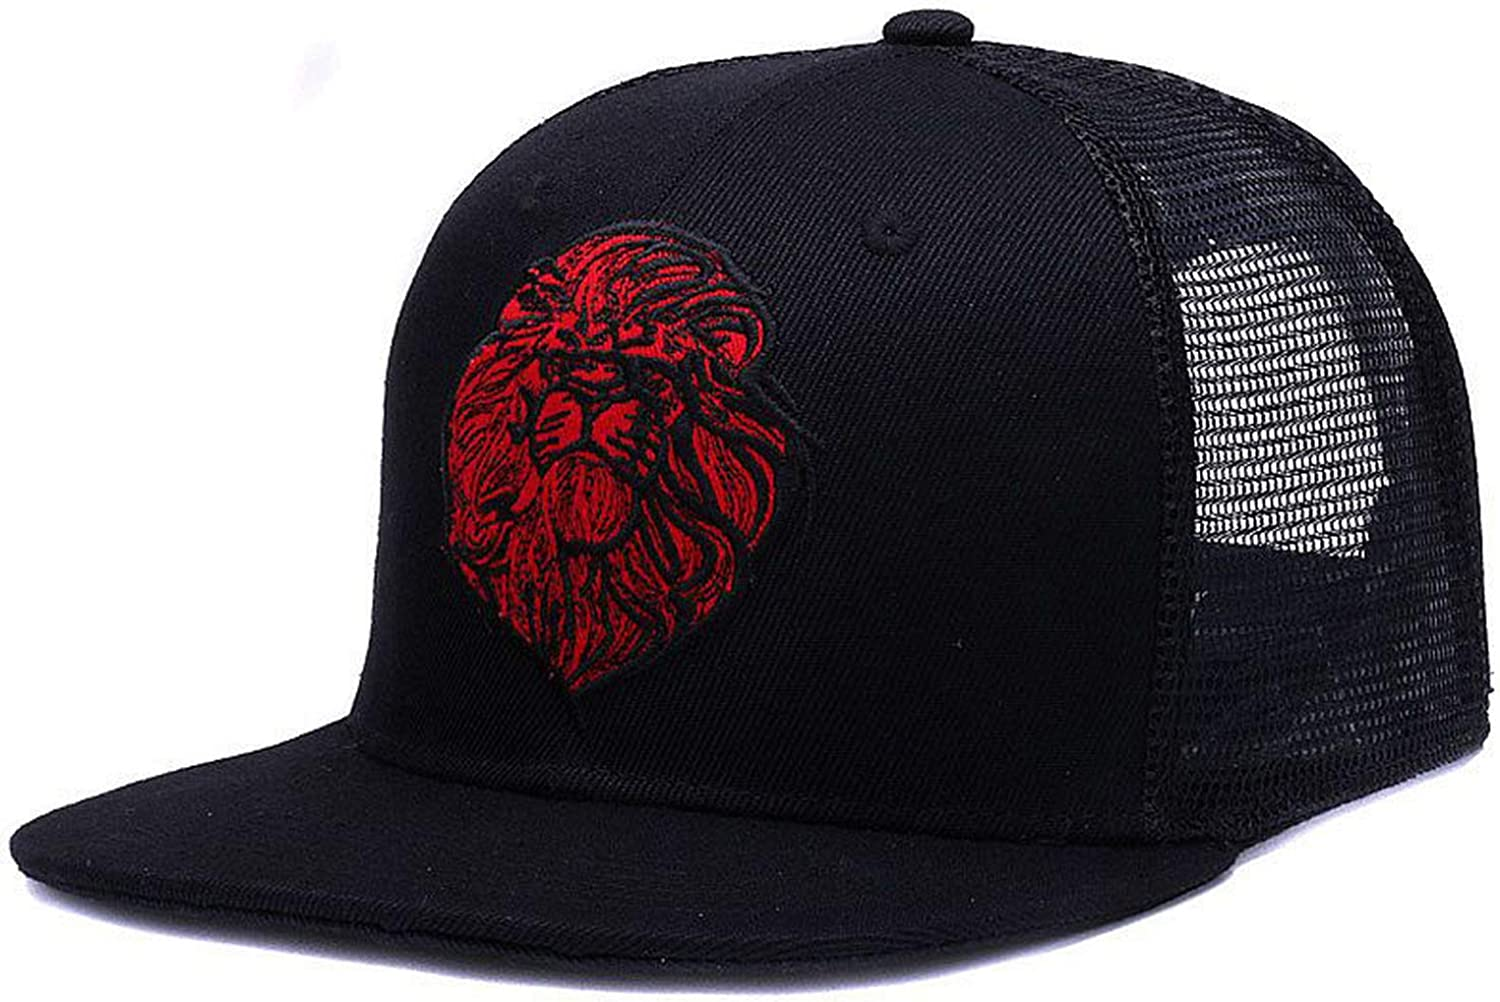 Original Black Baseball caps Hats Embroidery Lion mesh Snapbacks Hip hop Bone Trucker hat